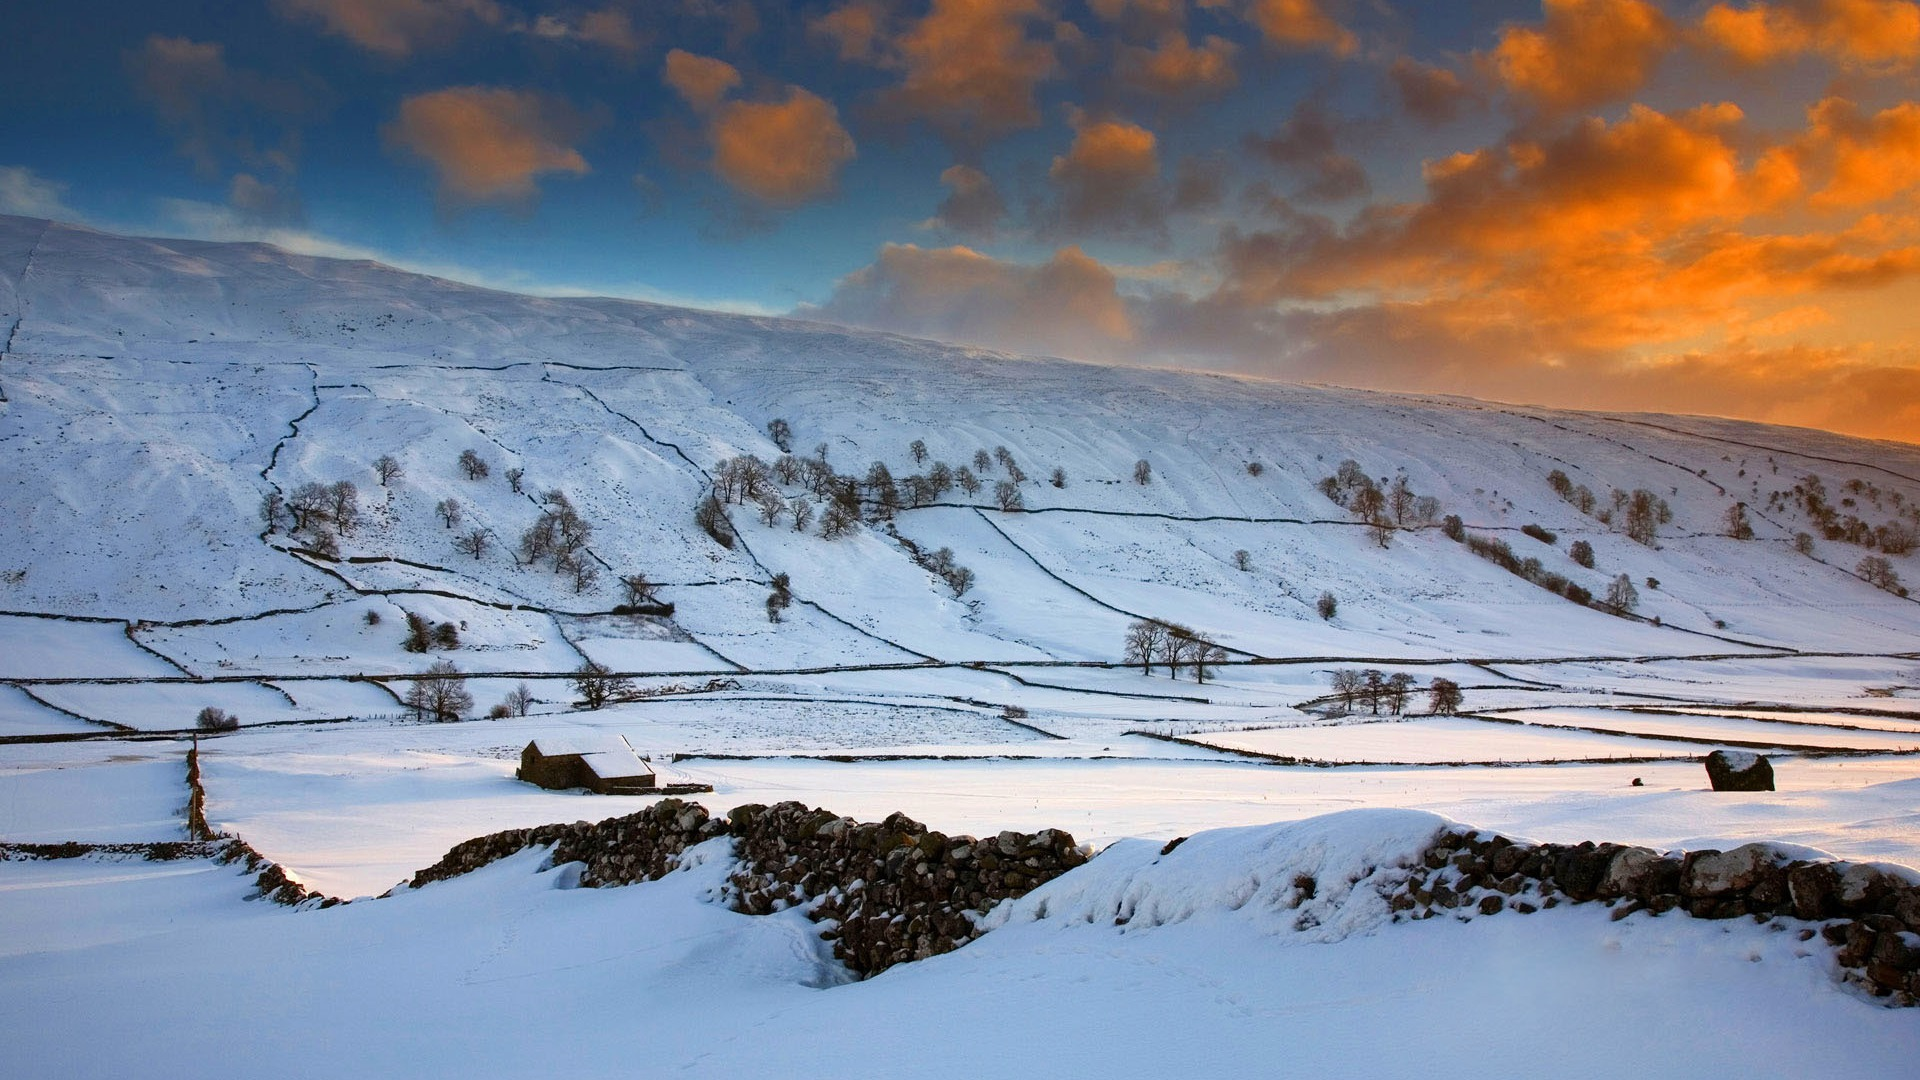 Download-winter-field-the-sky-clouds-snow-trees-sunset-hills-England-glow-sectio-wallpaper-wp3605134